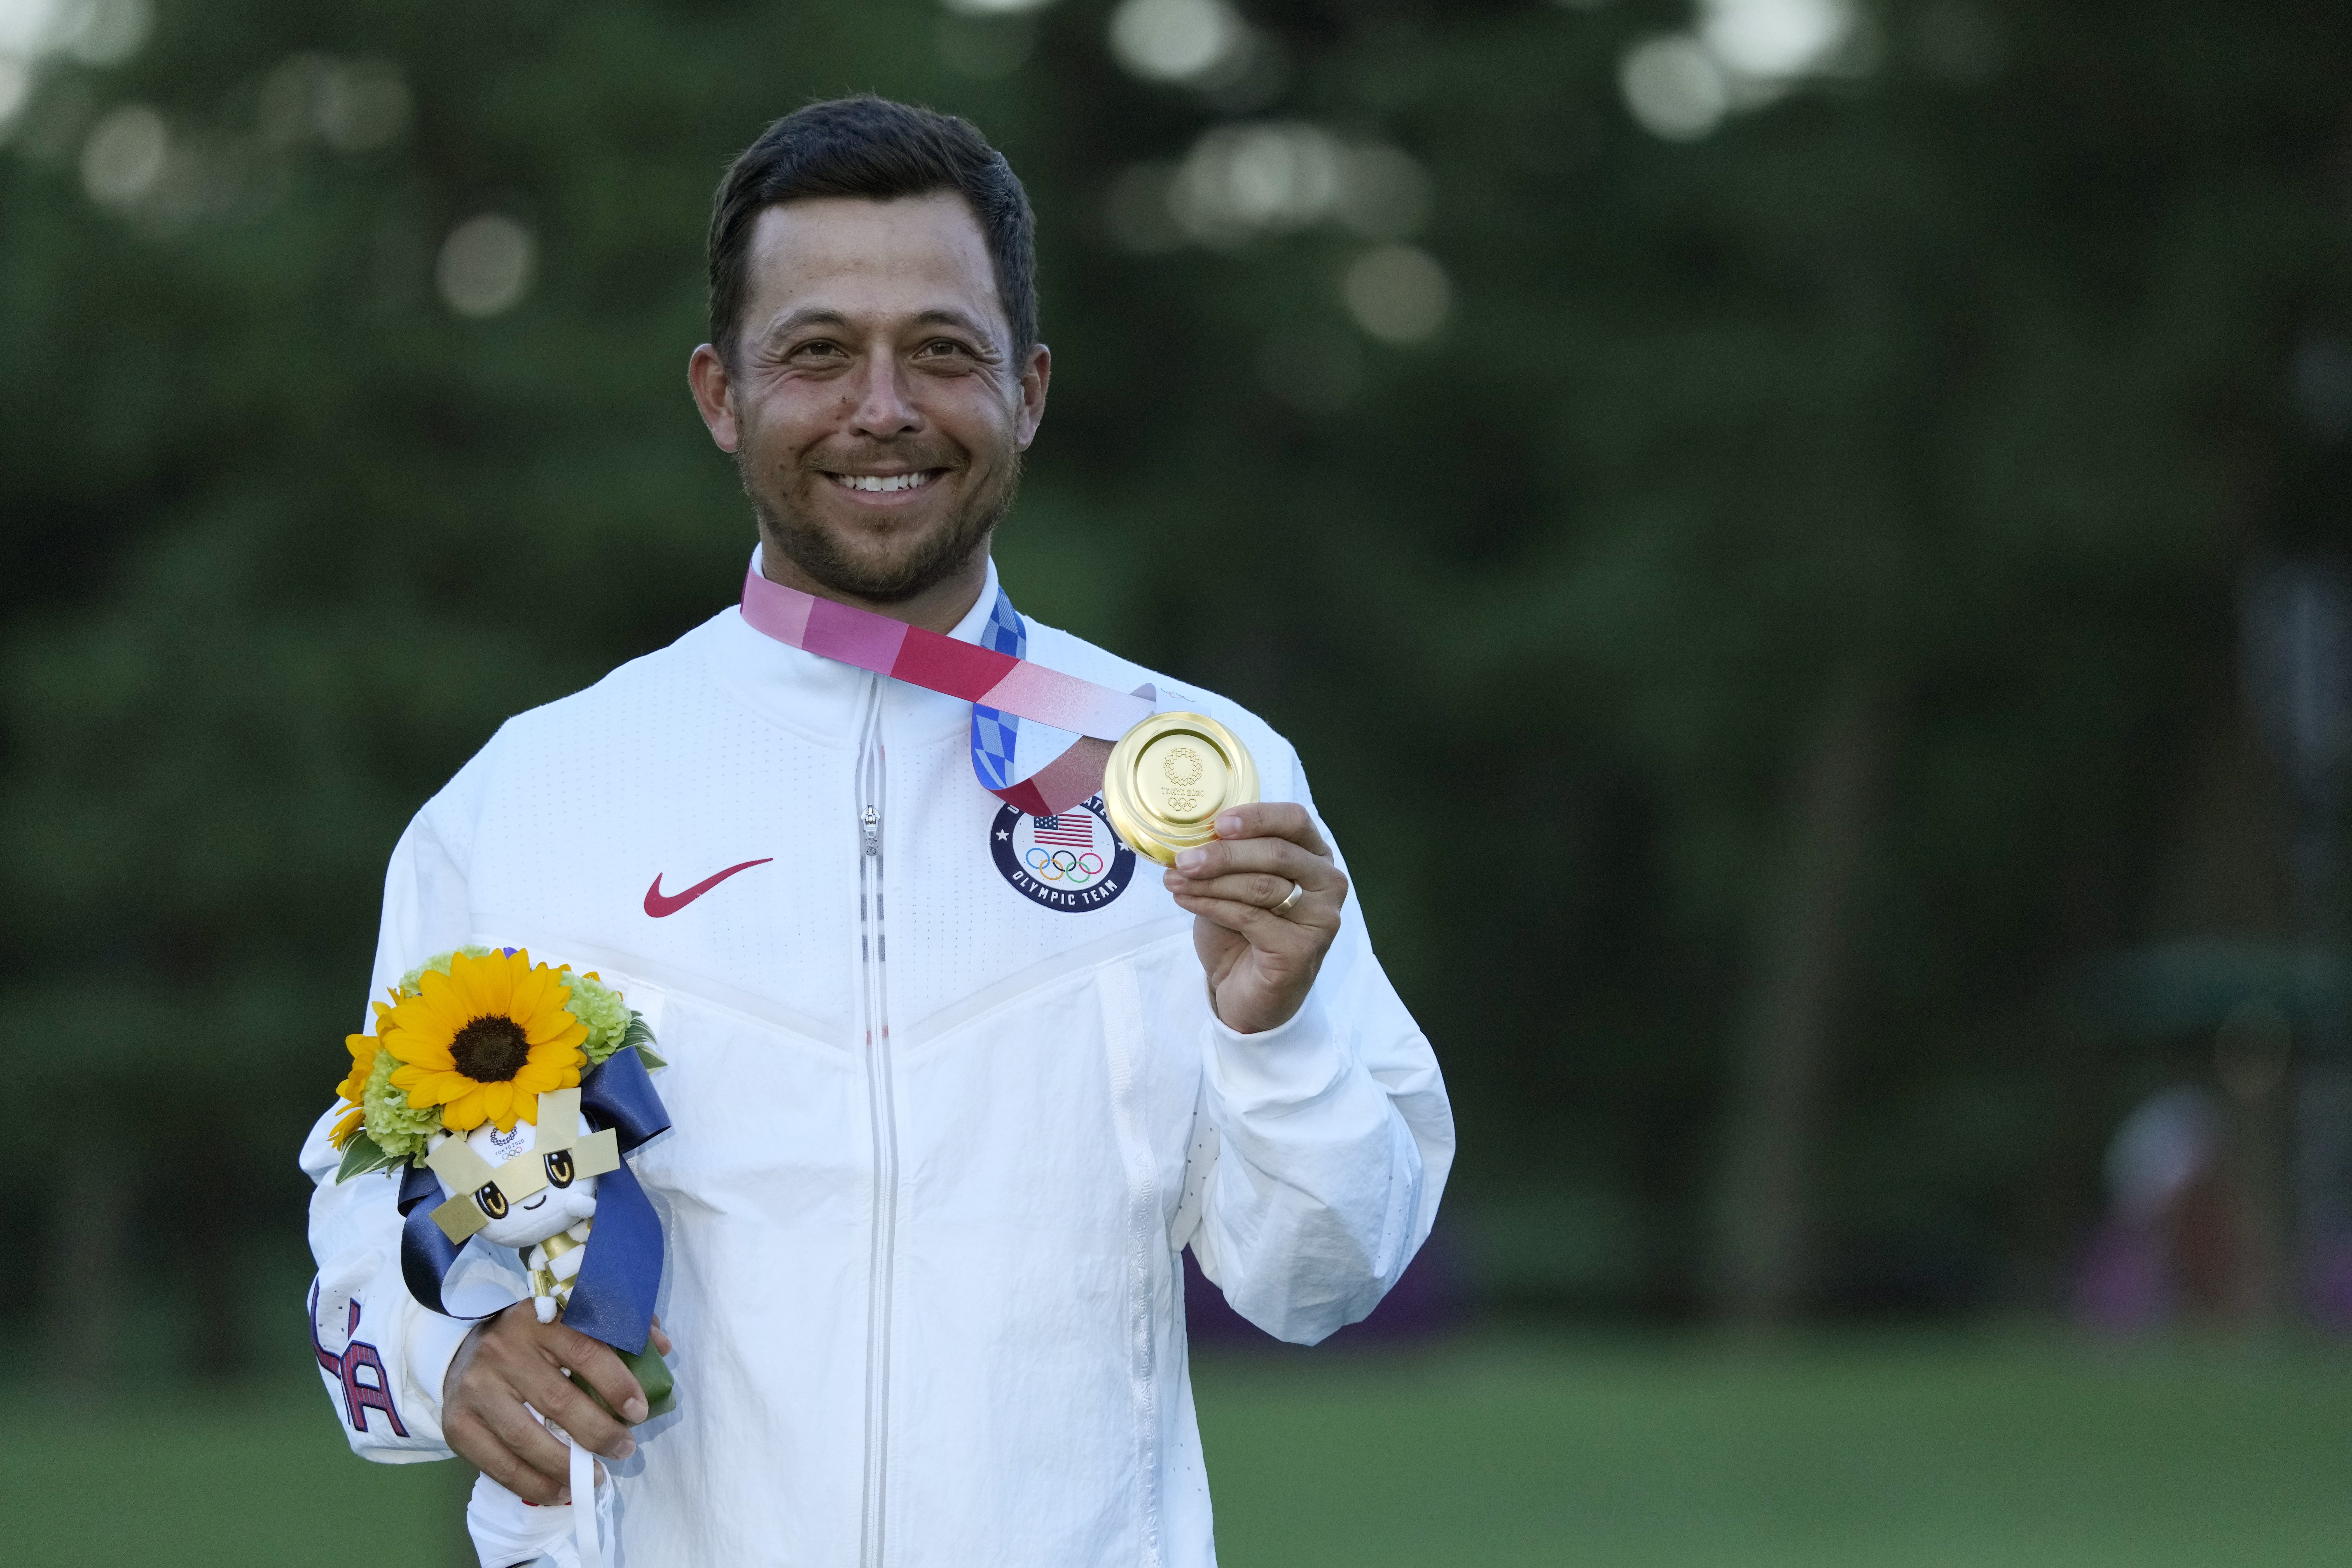 Xander Schauffele, of the United States, holds his gold medal in the men's golf at the 2020 Summer Olympics on in Kawagoe, Japan, on Aug. 1, 2021.